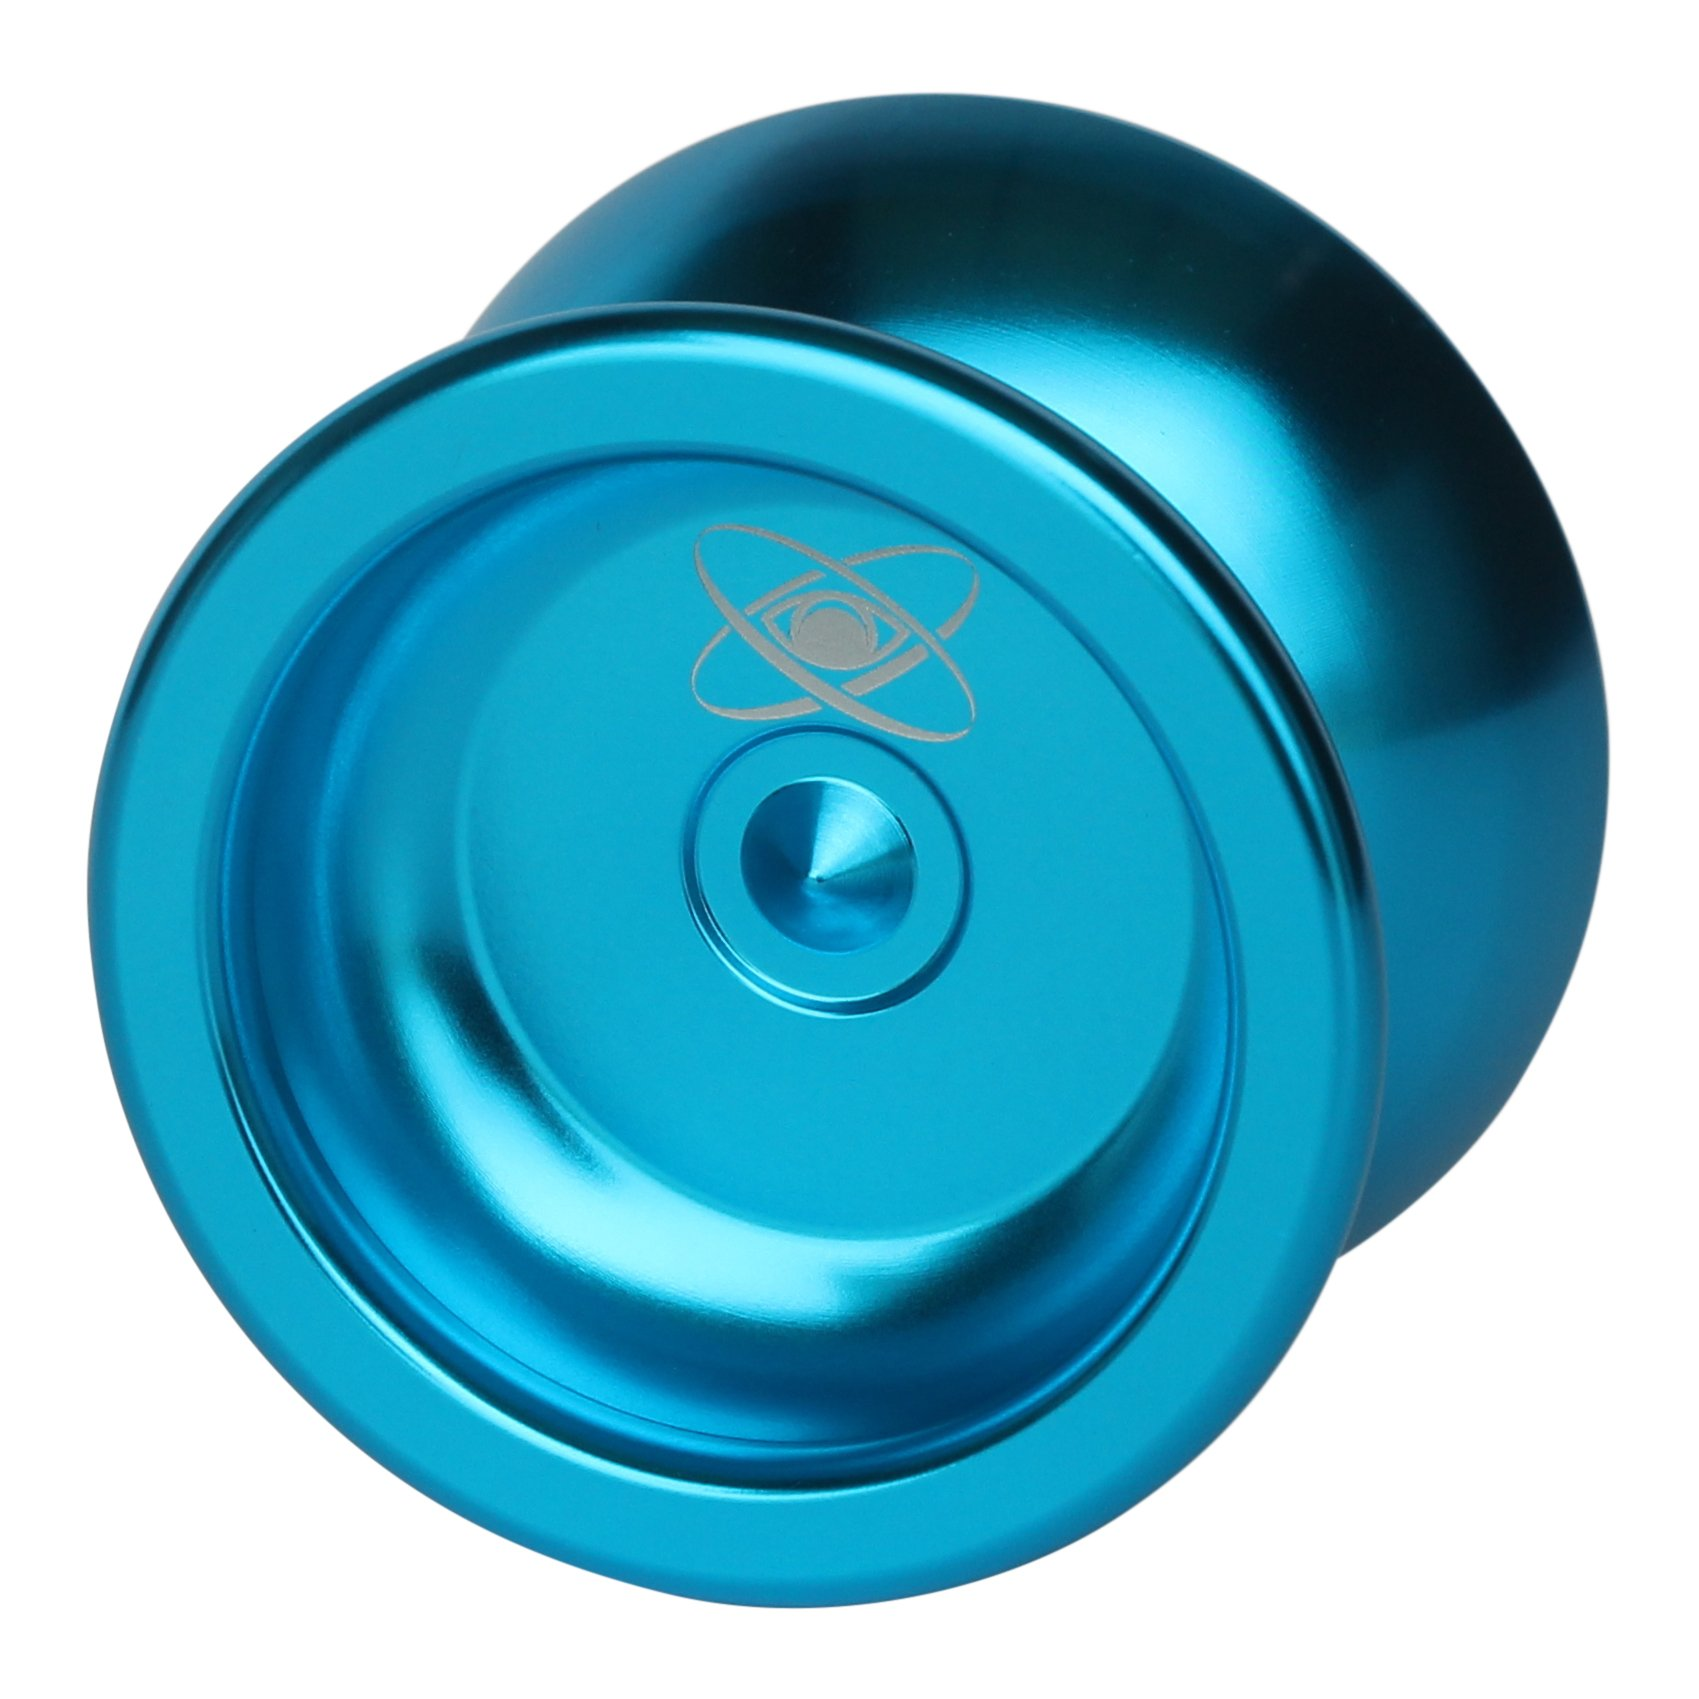 Yoyo King Watcher Metal Professional Yoyo Ball Bearing Axle Extra String Metallic Blue